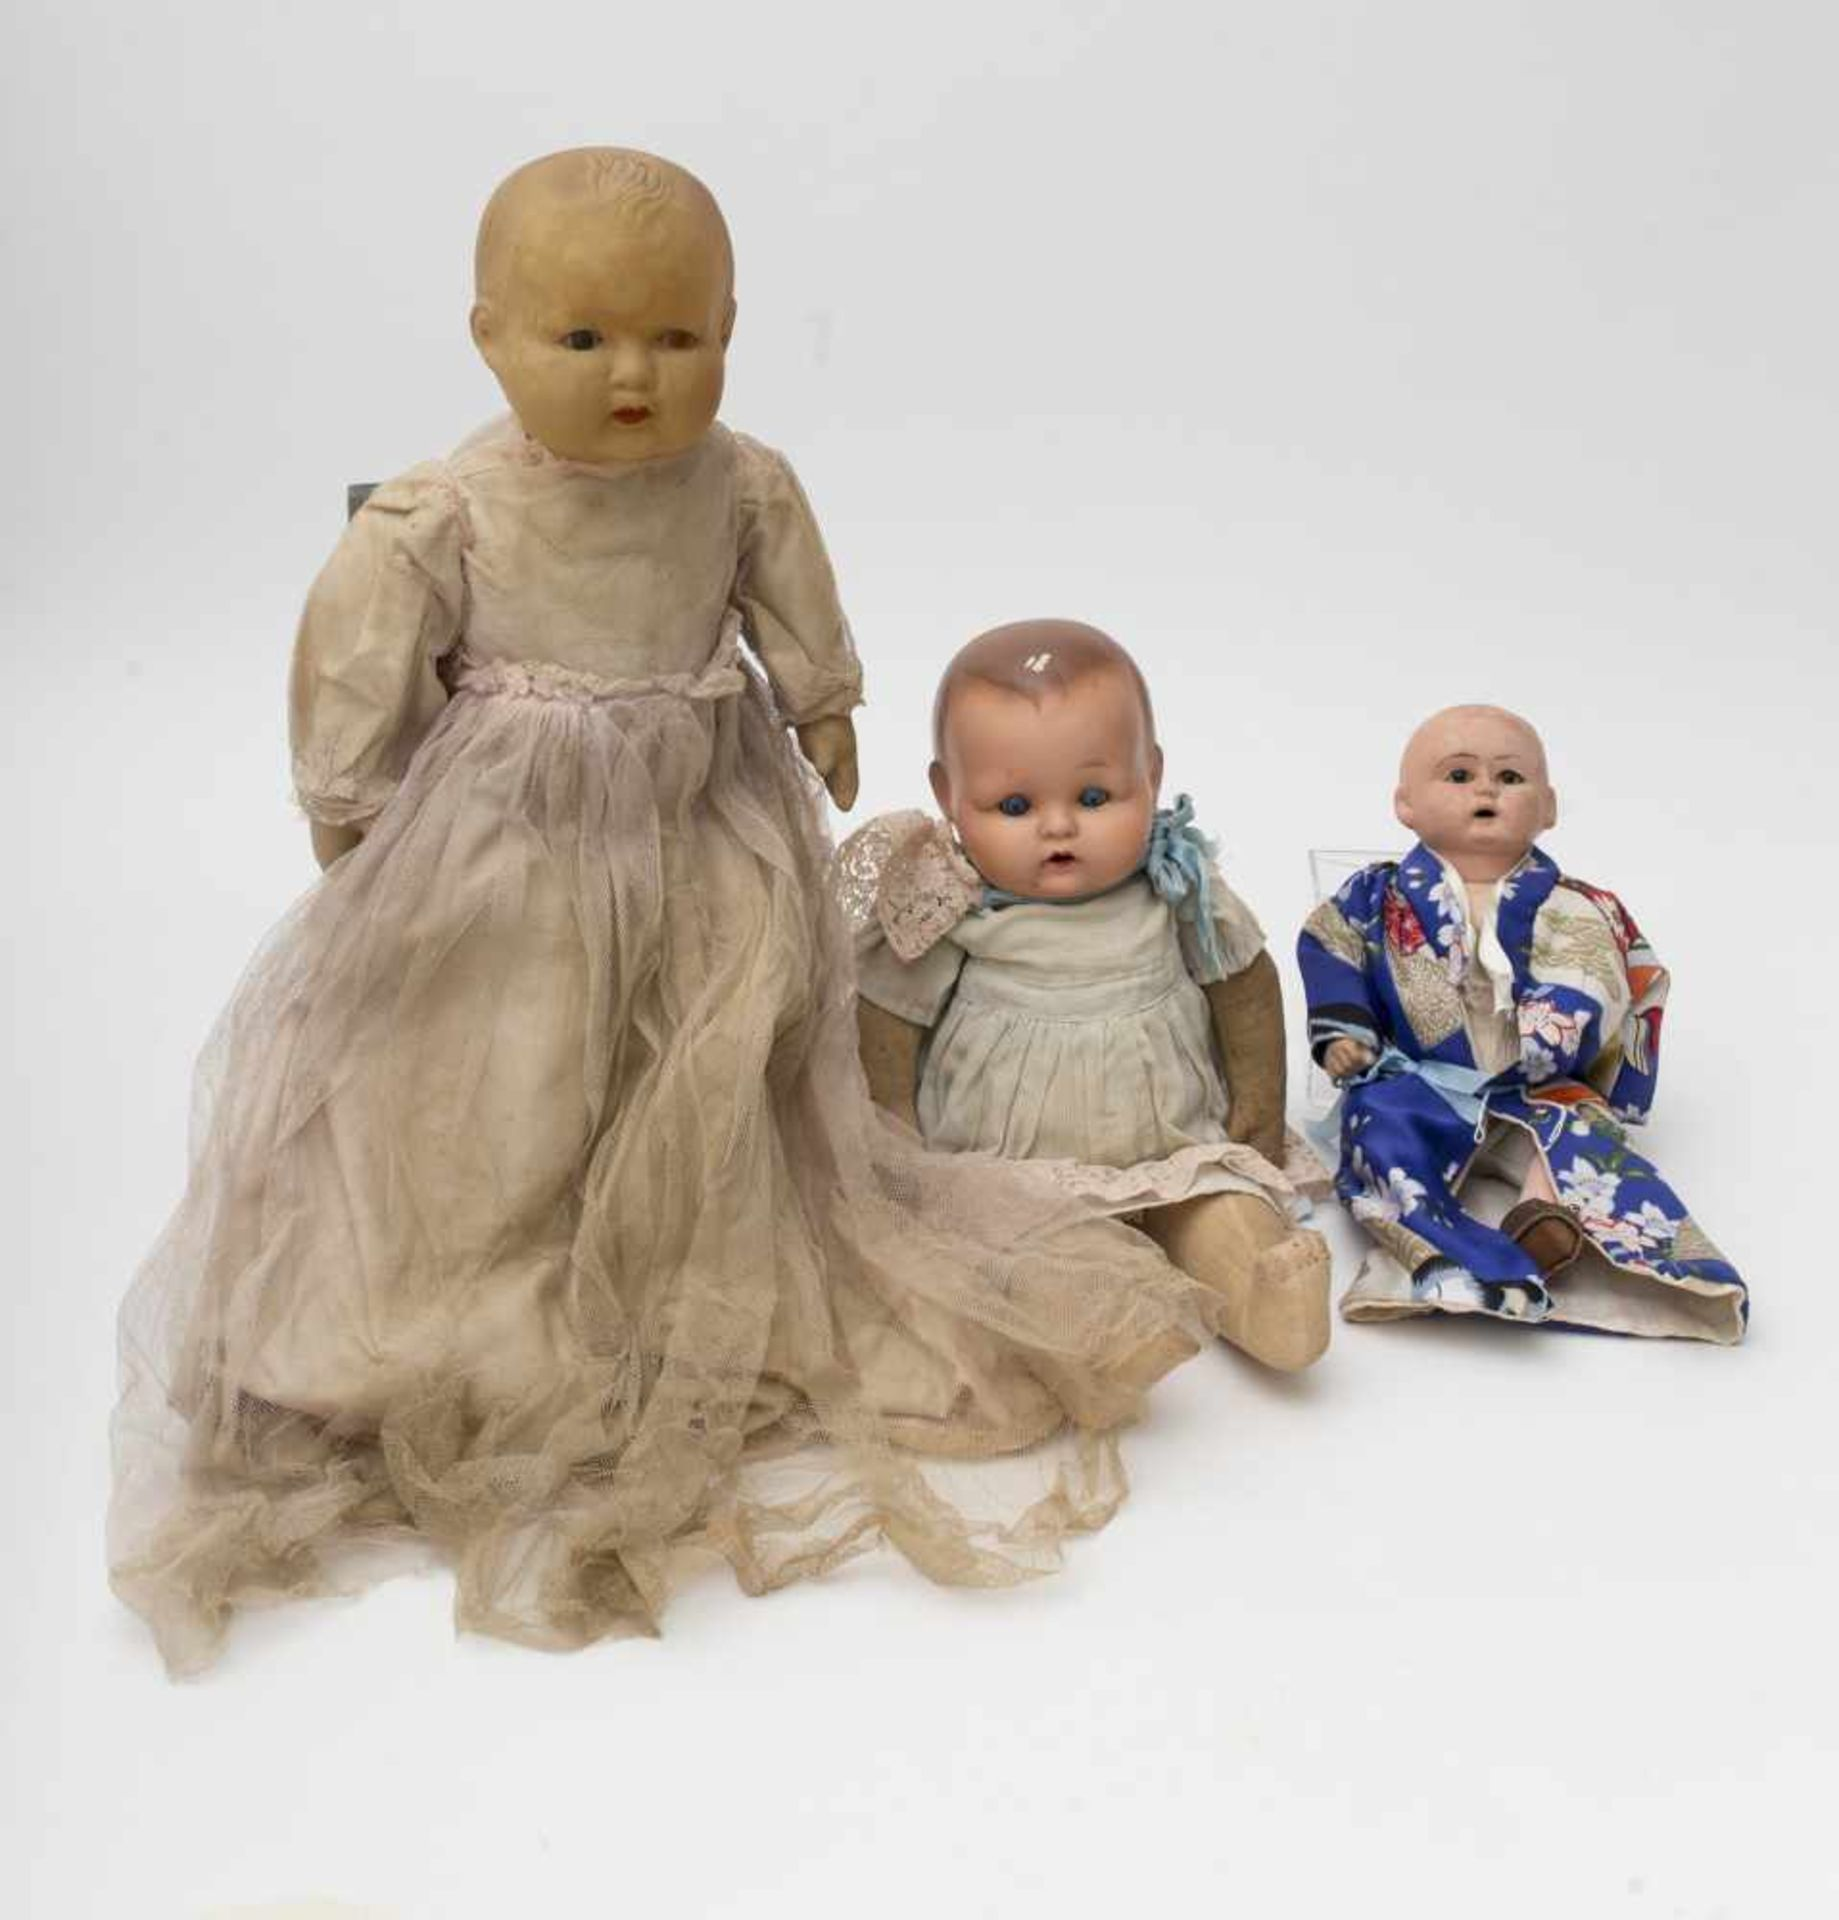 Set of 3 baby dolls With celluloid and composition heads, fabric bodies, of German make, L=27 to